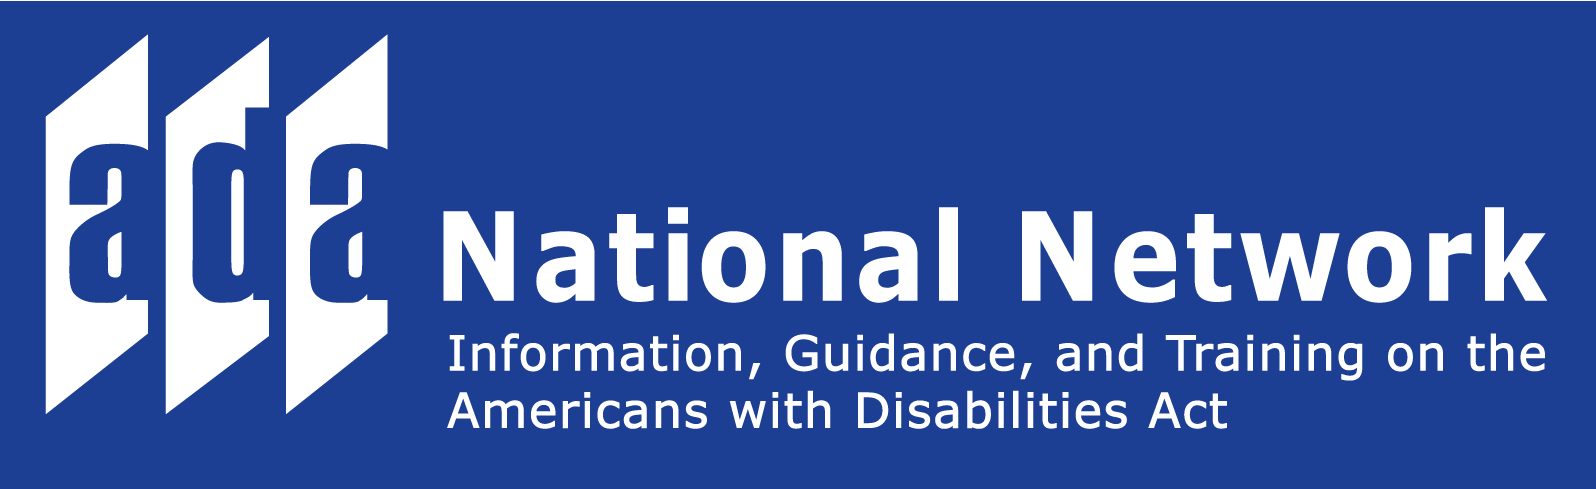 ADA National Network Information Guidance and Training on the Americans with Disabilities Act